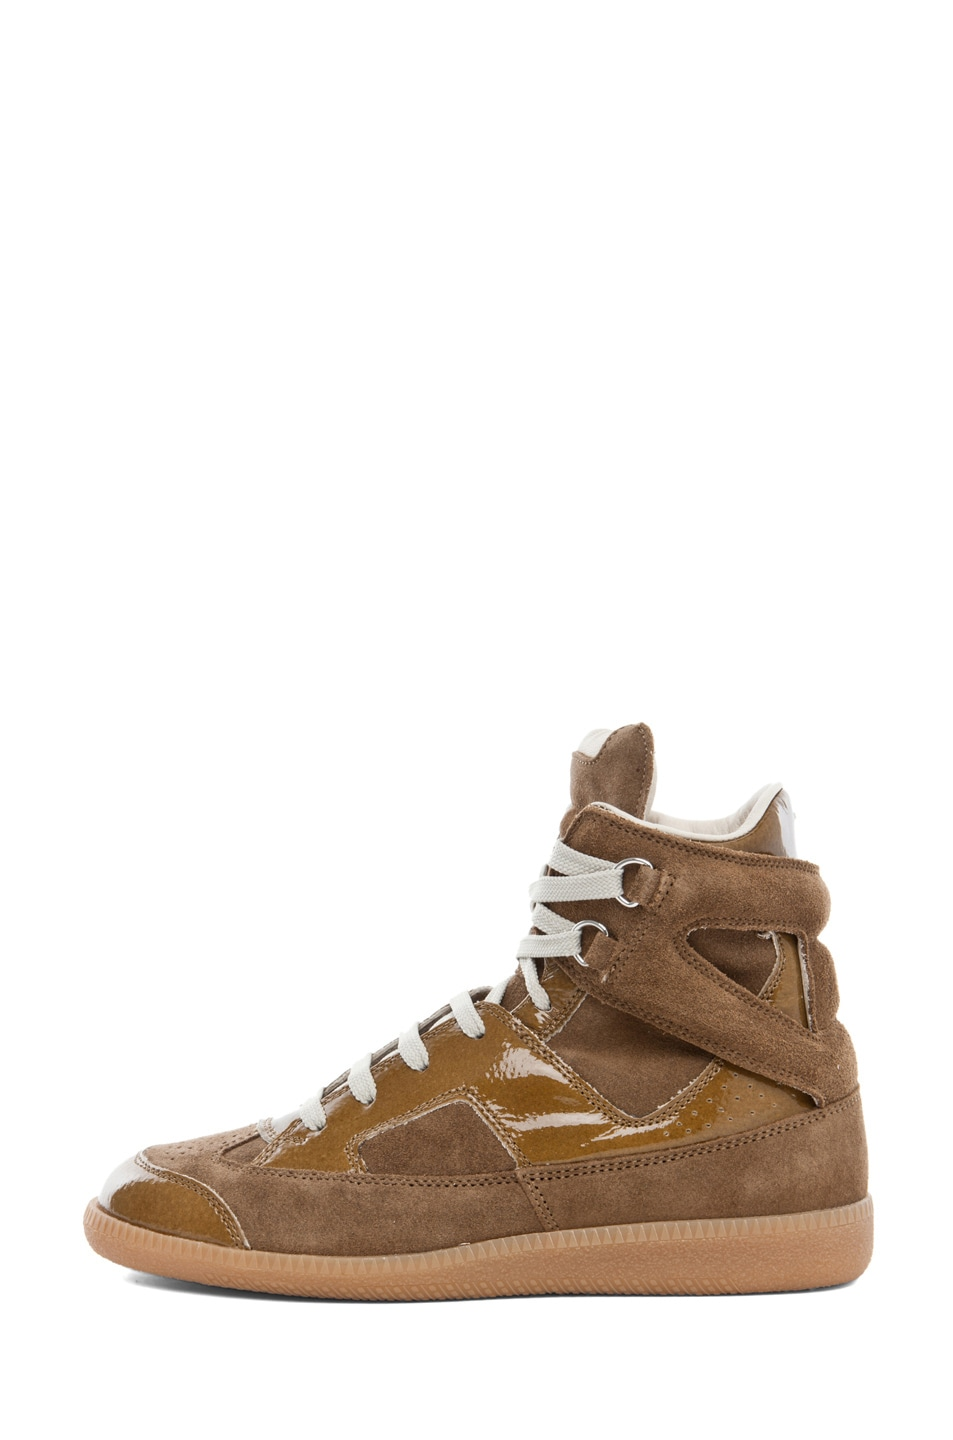 Image 1 of Maison Margiela Hi Top Sneaker in Olive